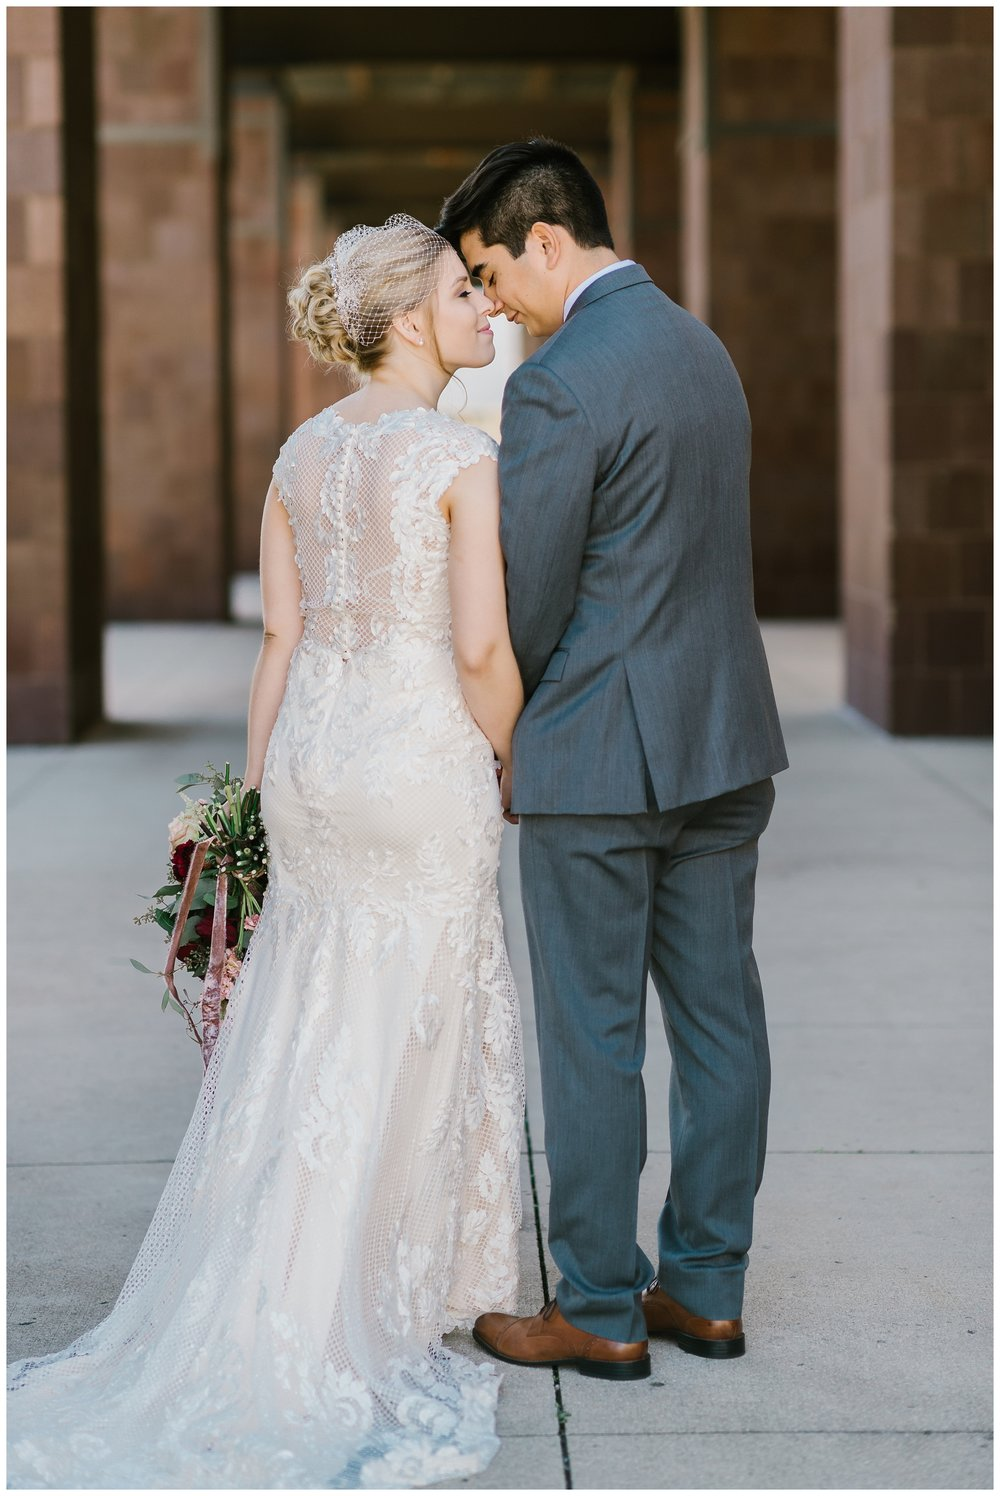 Rebecca_Shehorn_Photography_Indianapolis_Wedding_Photographer_7337.jpg